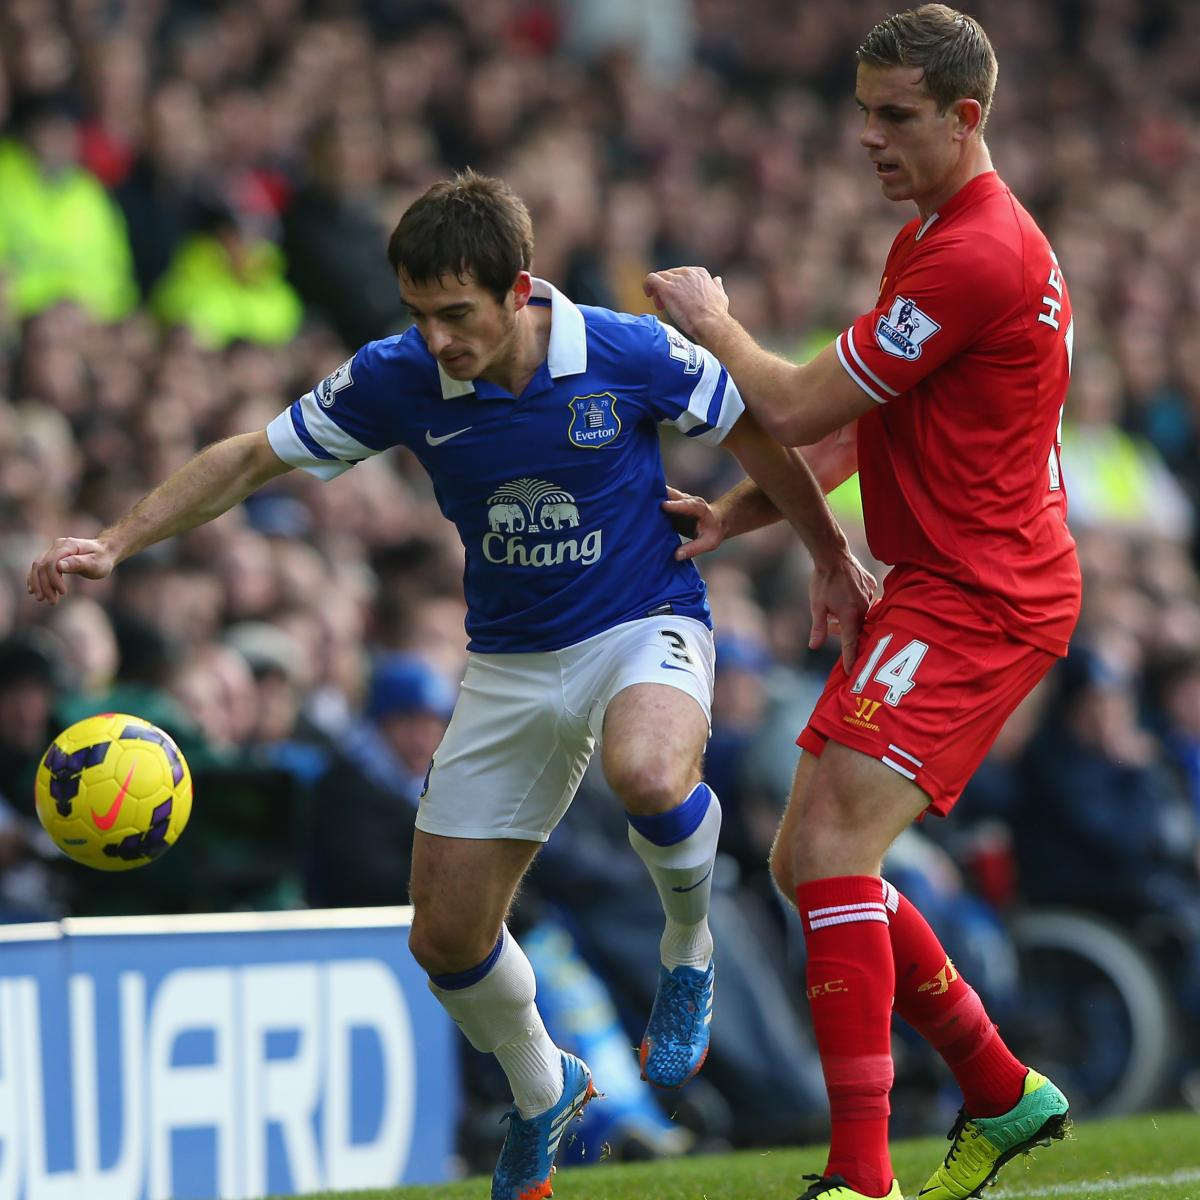 Barclays premier league table week 13 how early action - Barclays premier league ranking table ...